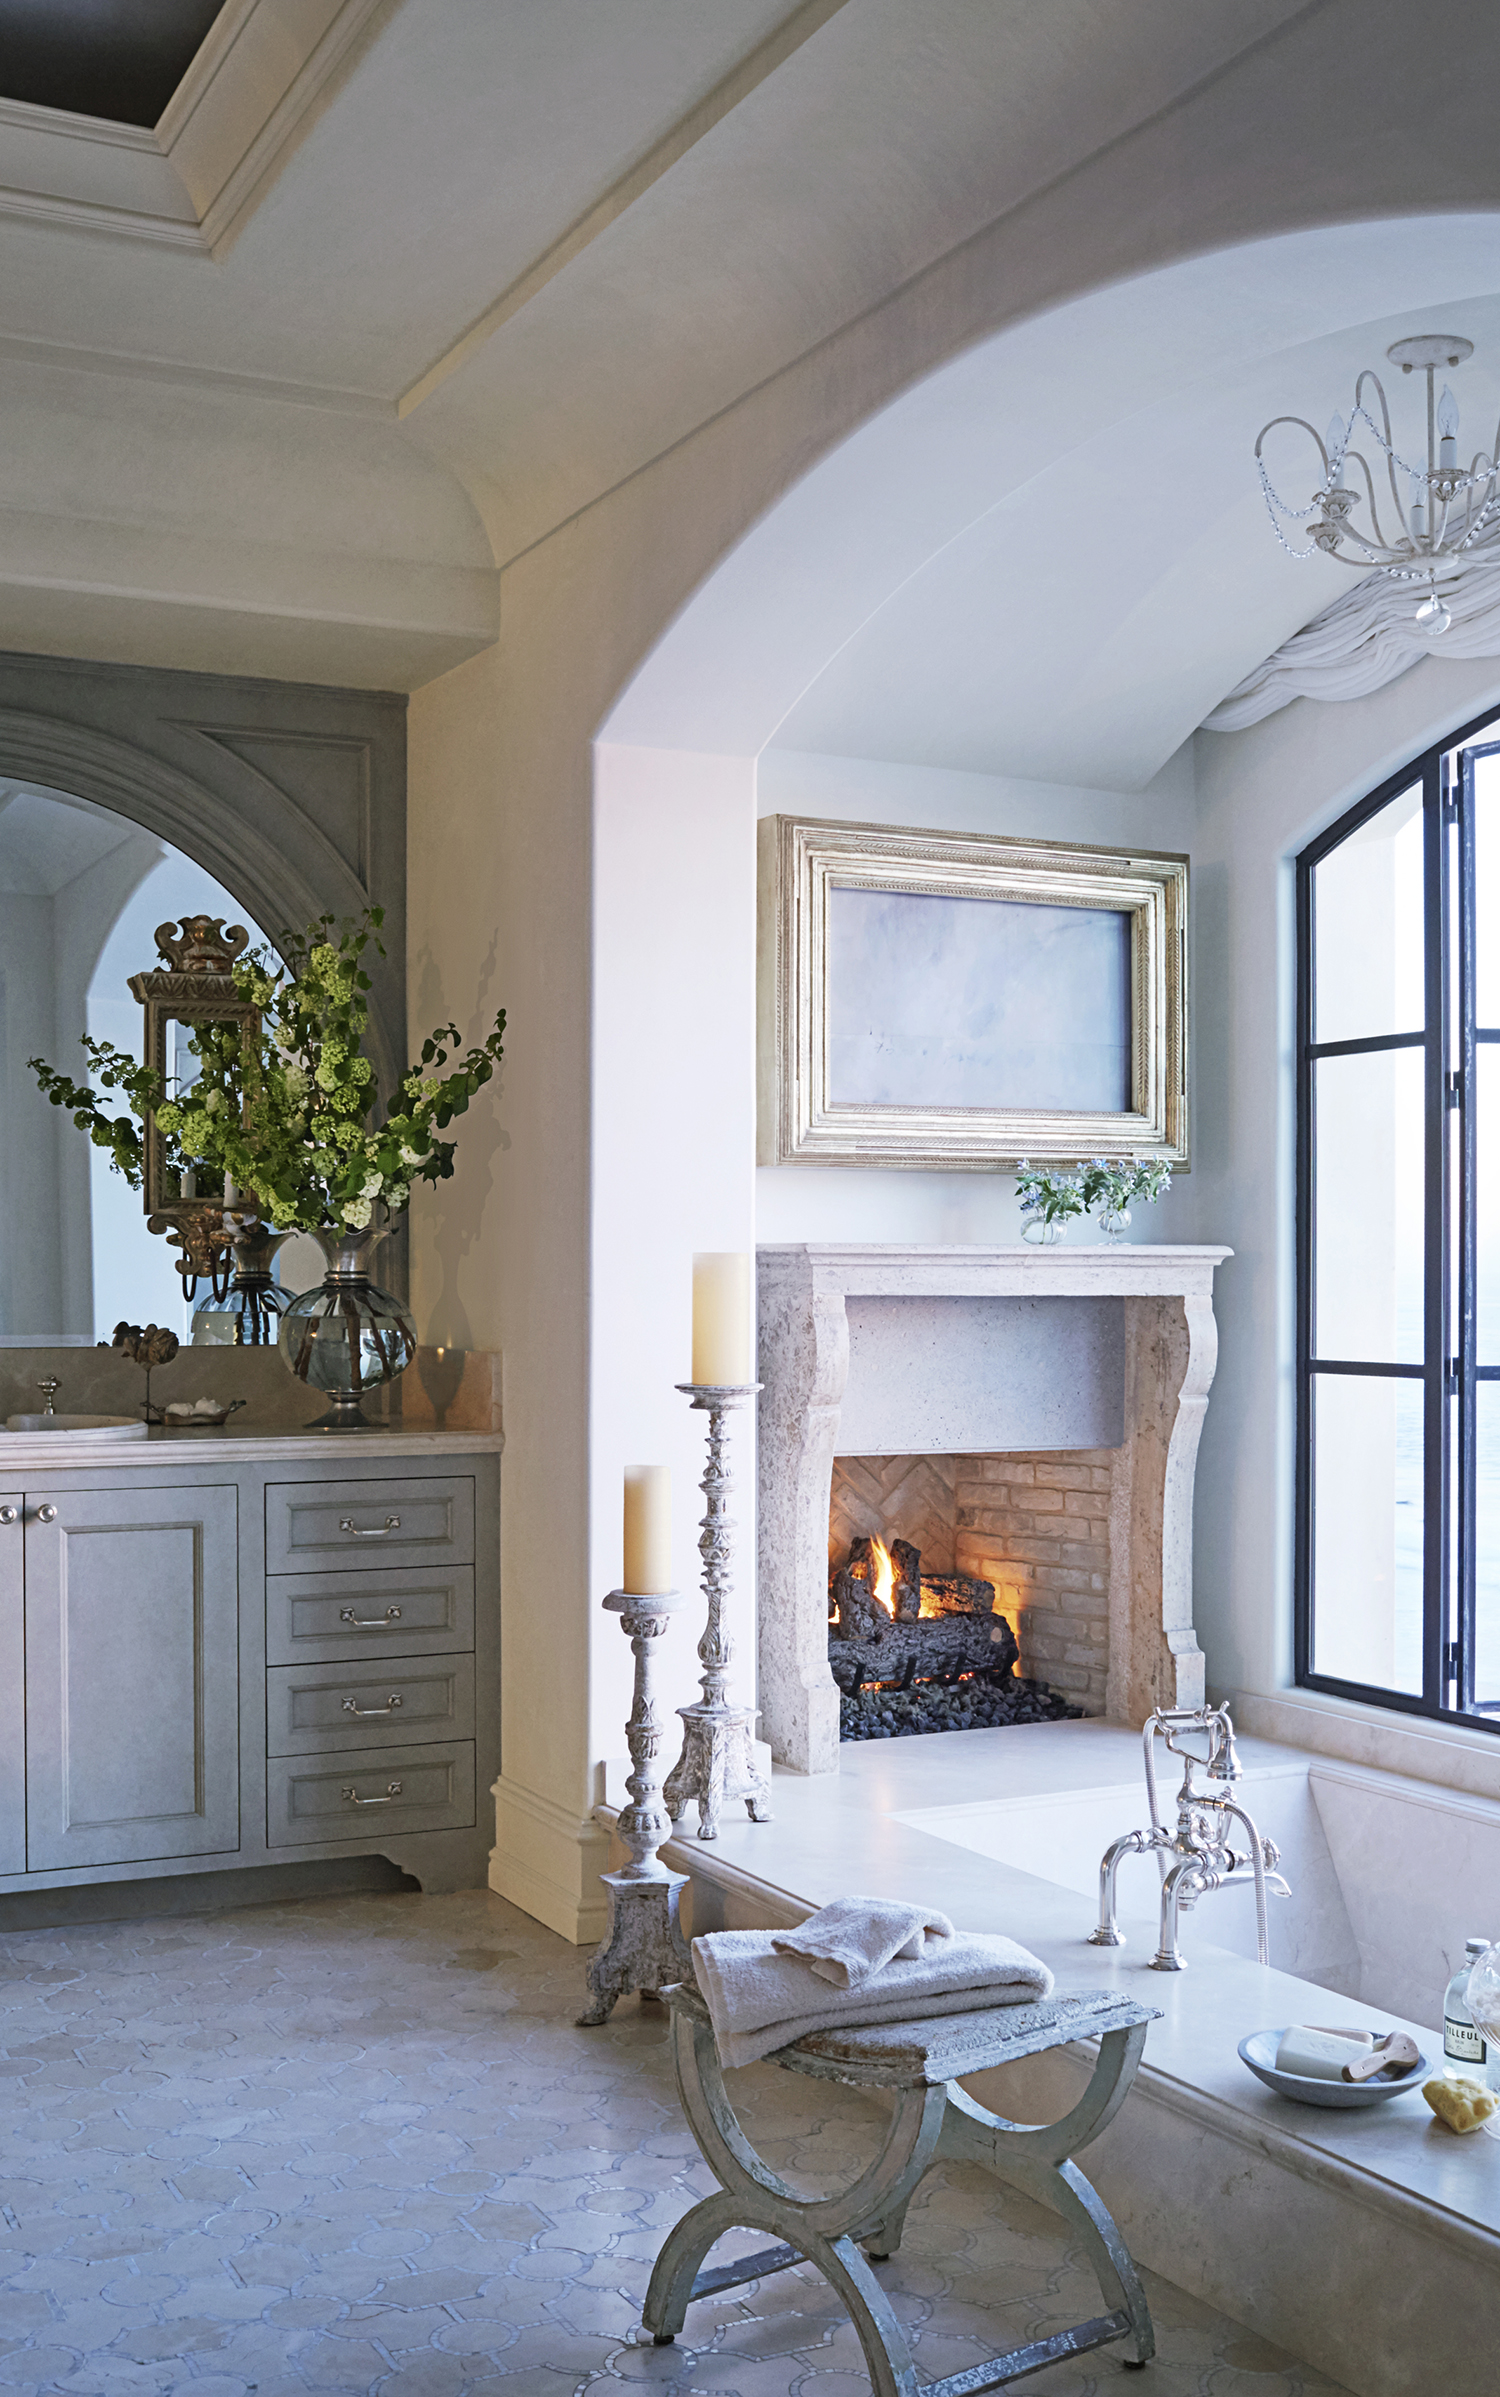 Bathroom With A Fireplace